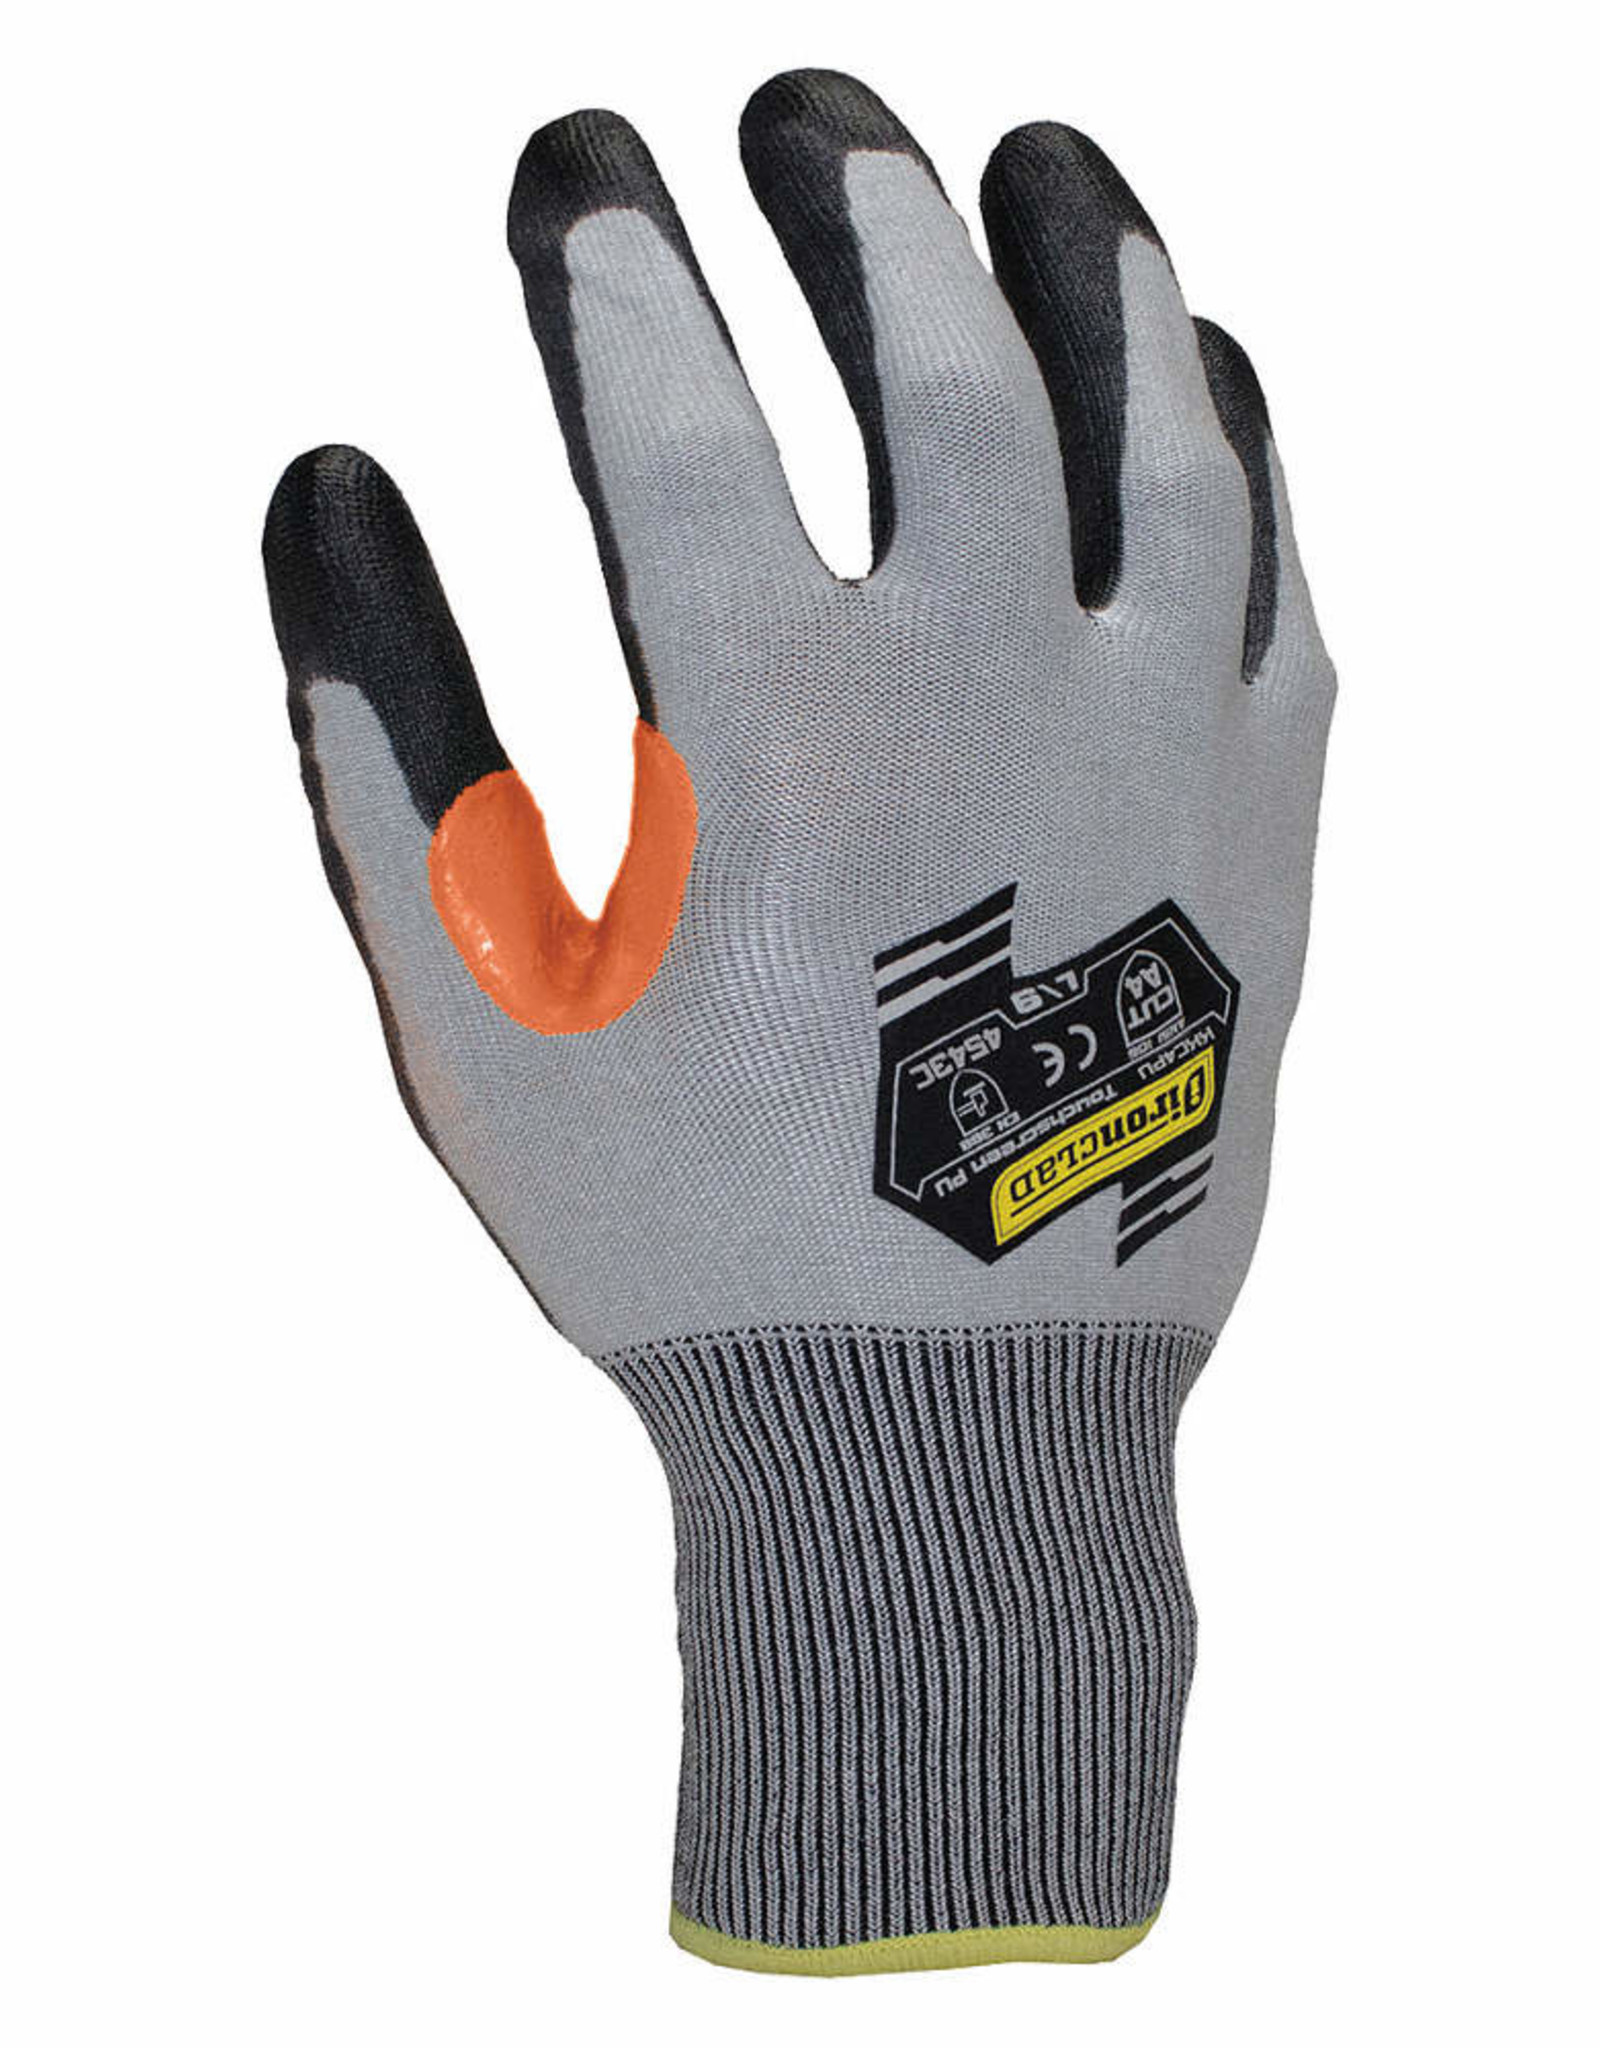 Cut Resistant Touchscreen Gloves, ANSI/ISEA